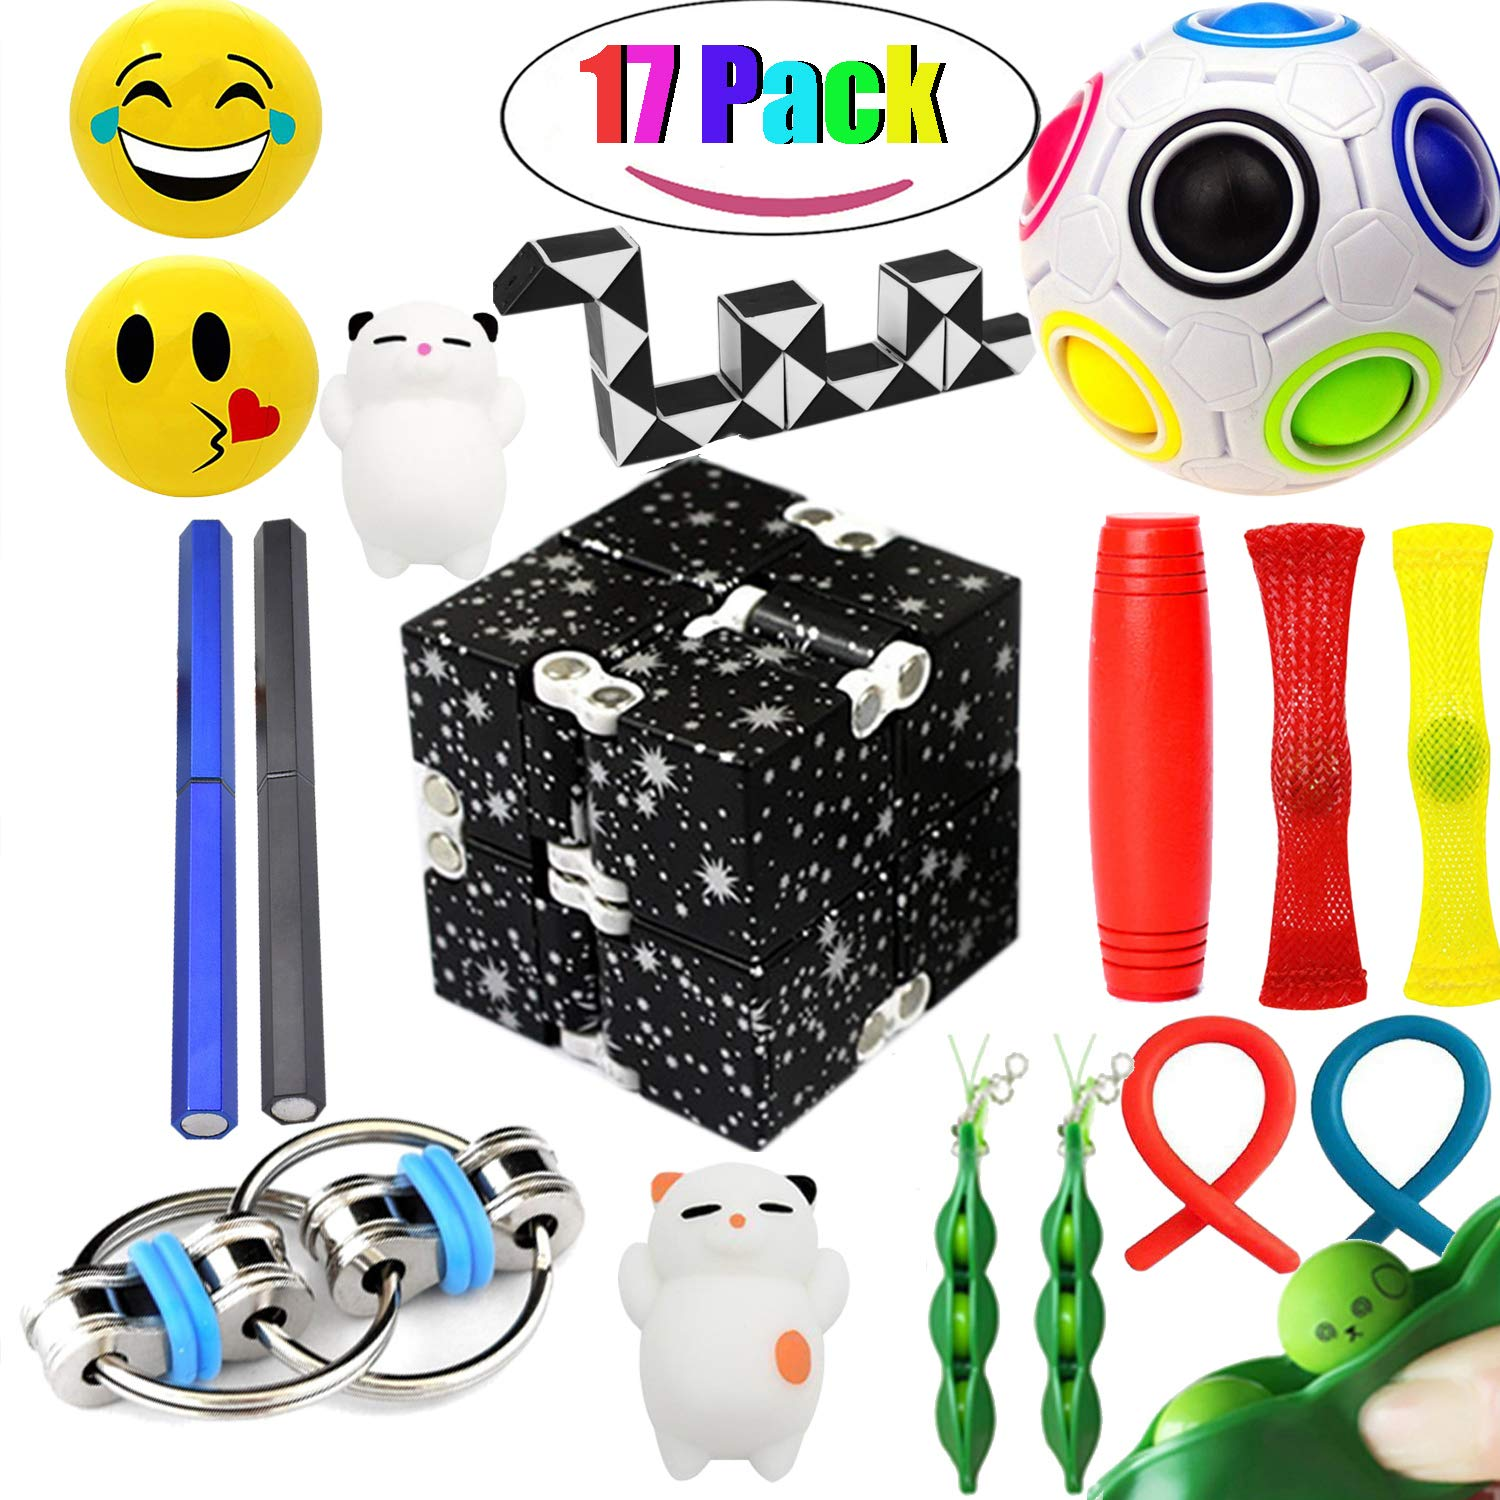 The Ultimate Sensory Fidget Toys Kit for Kids Prime 20 Packs Fidget Cube/Infinity Cube/Twisted Toy/Squishy Ball/Squeeze Bean/Fidget Pen/Rainbow Magic Balls ADD ADHD Stress Relax. by Sumine